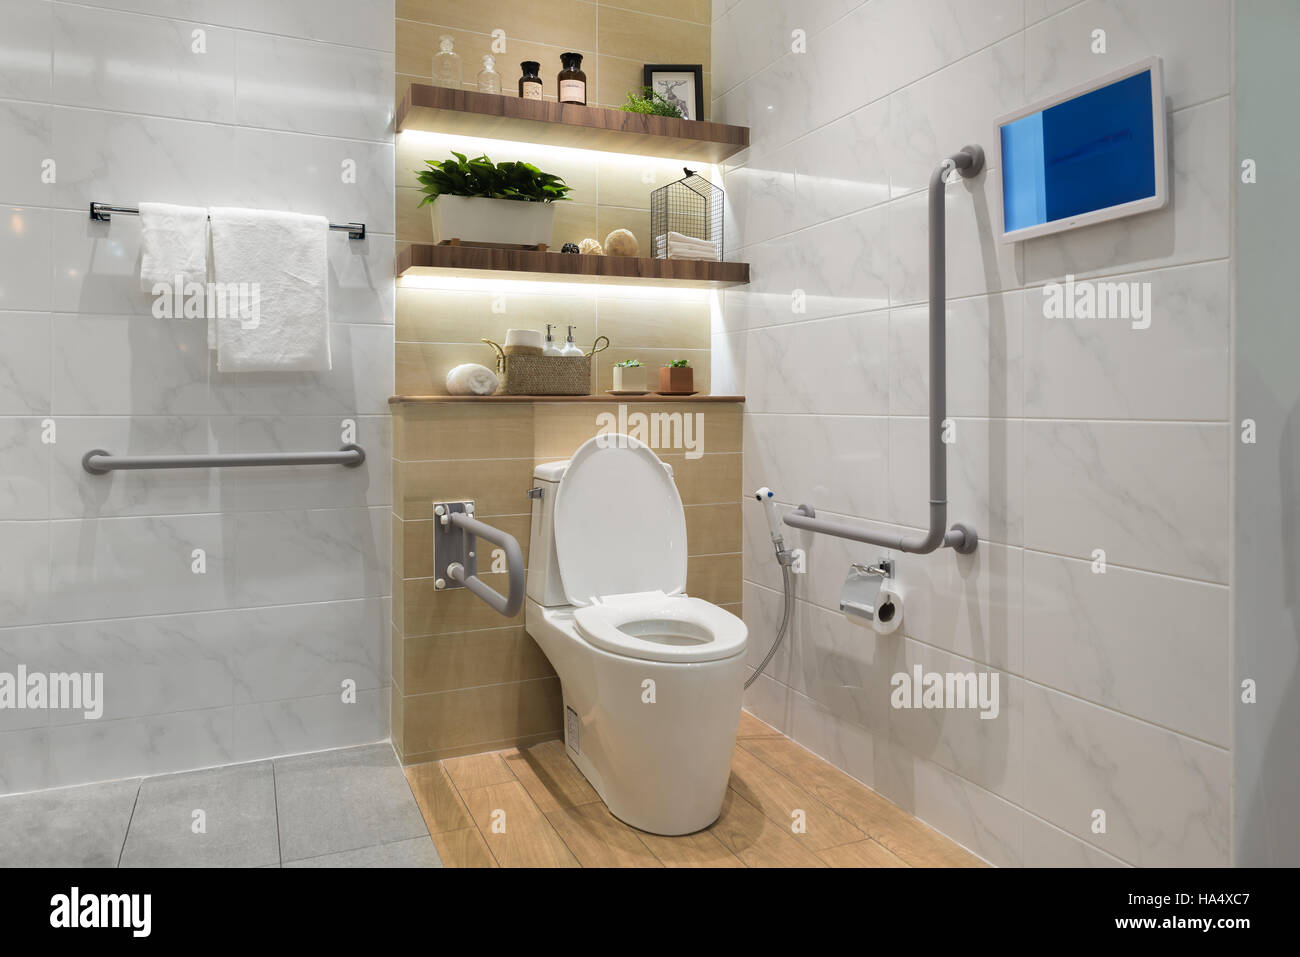 Interior of bathroom for the disabled or elderly people. Handrail